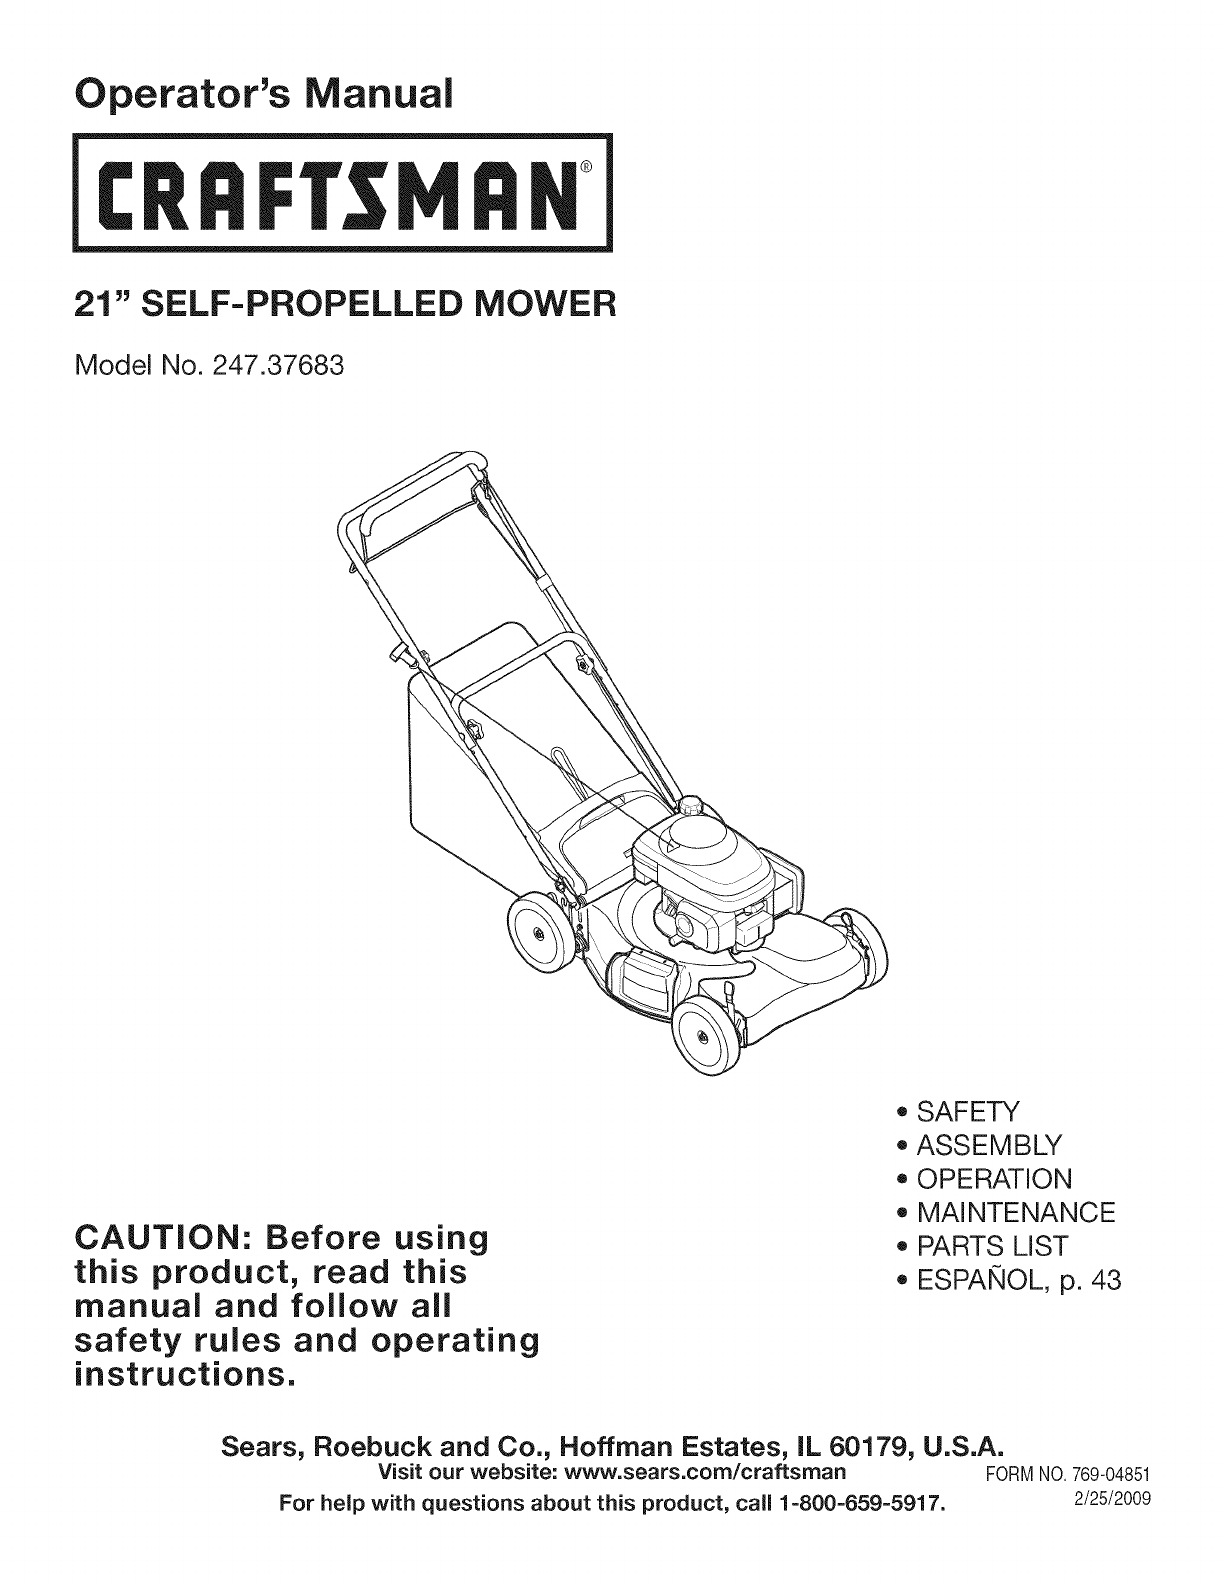 Craftsman Lawn Mower 247.37683 User Guide | Manualsonline in Craftsman Self Propelled Lawn Mower Parts Diagram